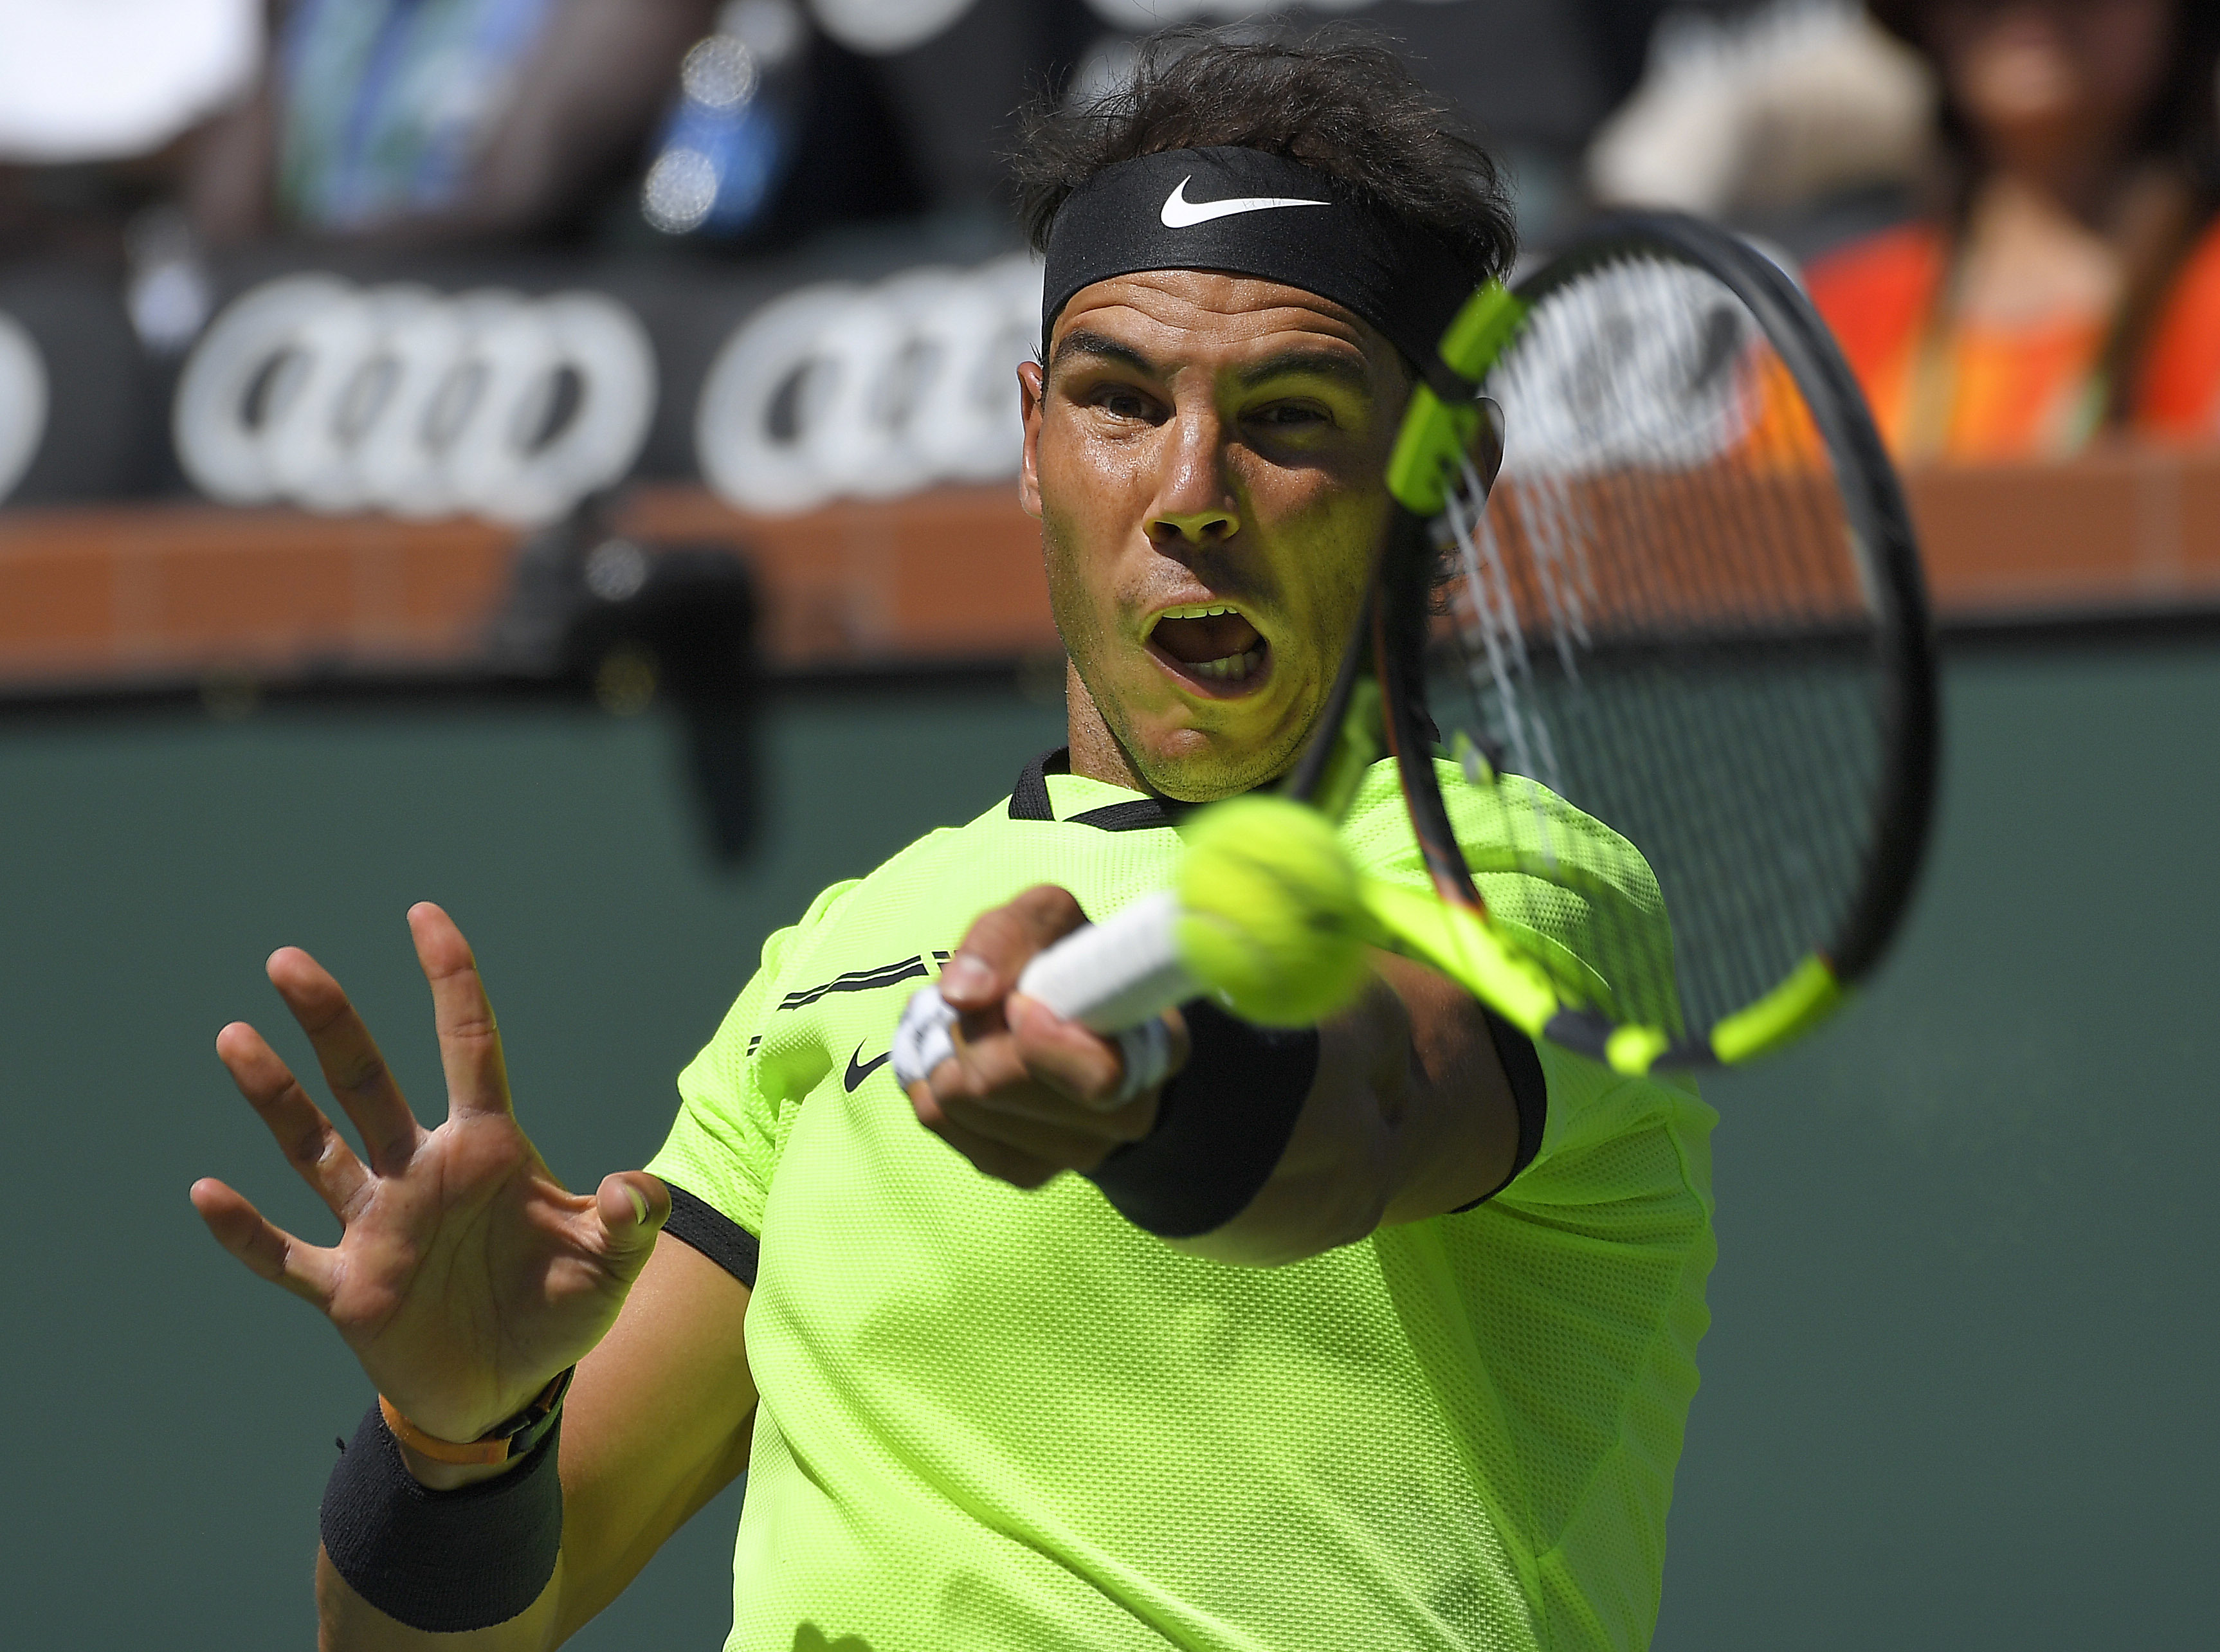 Rafael Nadal, of Spain, returns a shot to Fernando Verdasco, of Spain, at the BNP Paribas Open tennis tournament, Tuesday, March 14, 2017, in Indian Wells, Calif. (AP Photo/Mark J. Terrill)